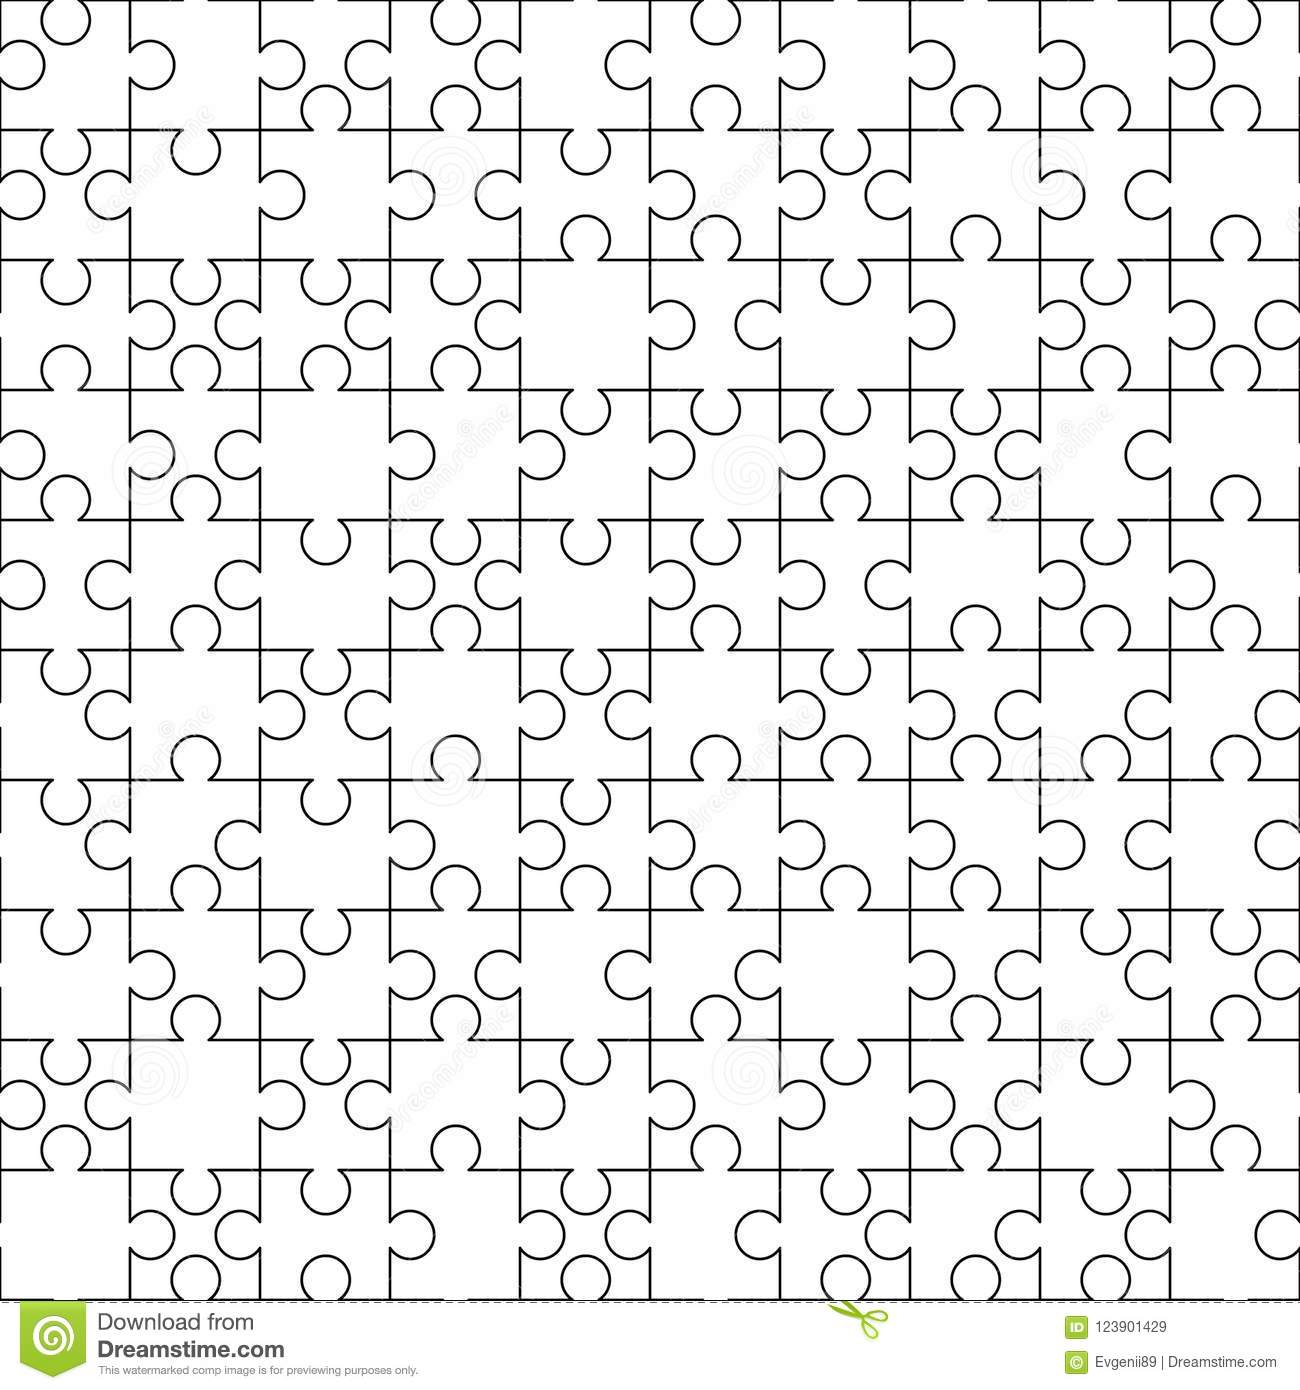 White Puzzles Pieces Seamless Pattern. Jigsaw Puzzle Template Ready - Print Puzzle From Photo